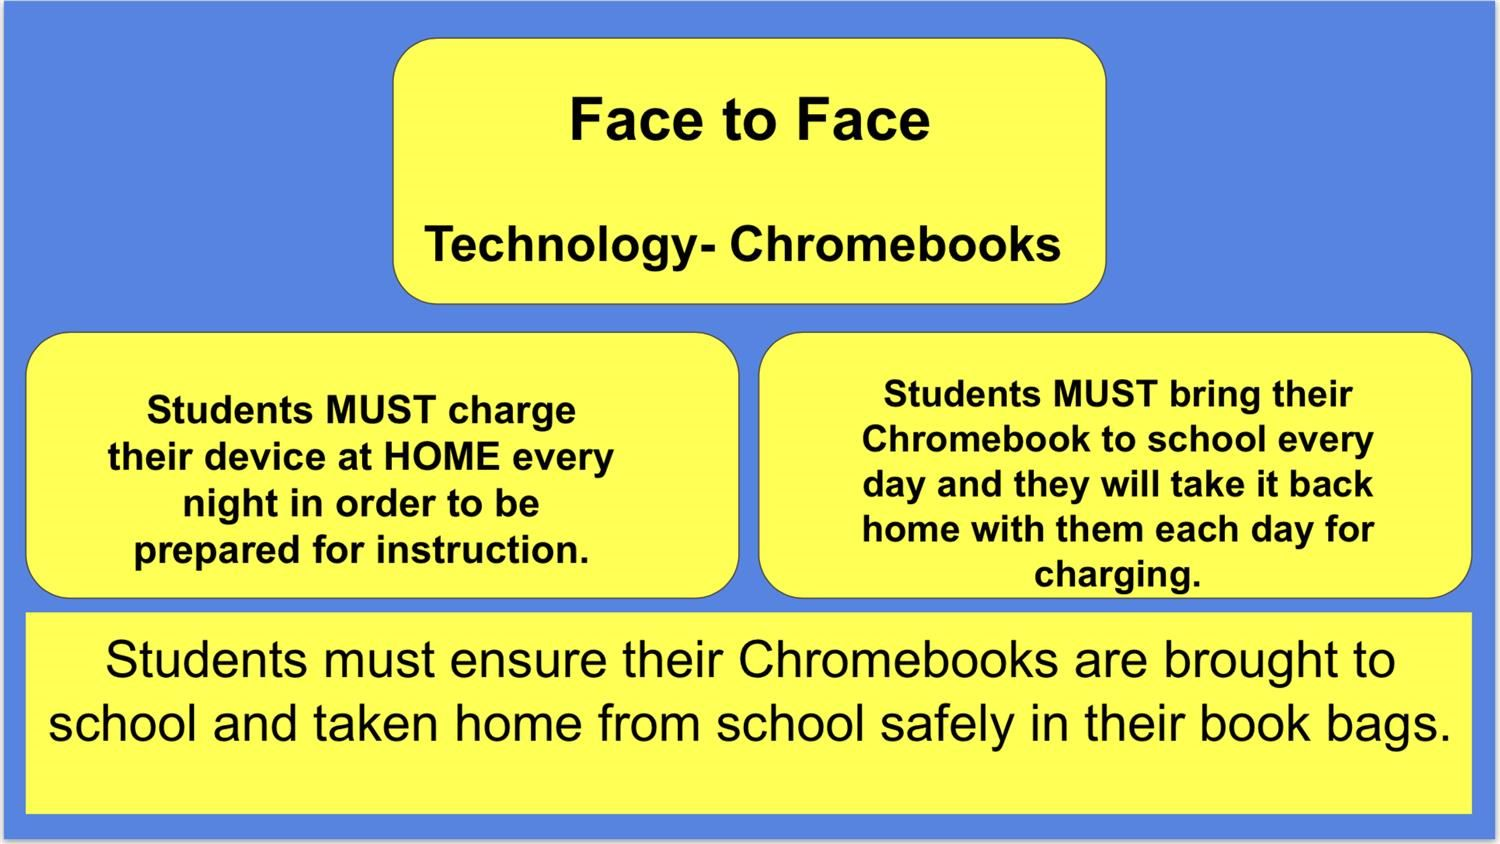 Face To Face Chromebooks